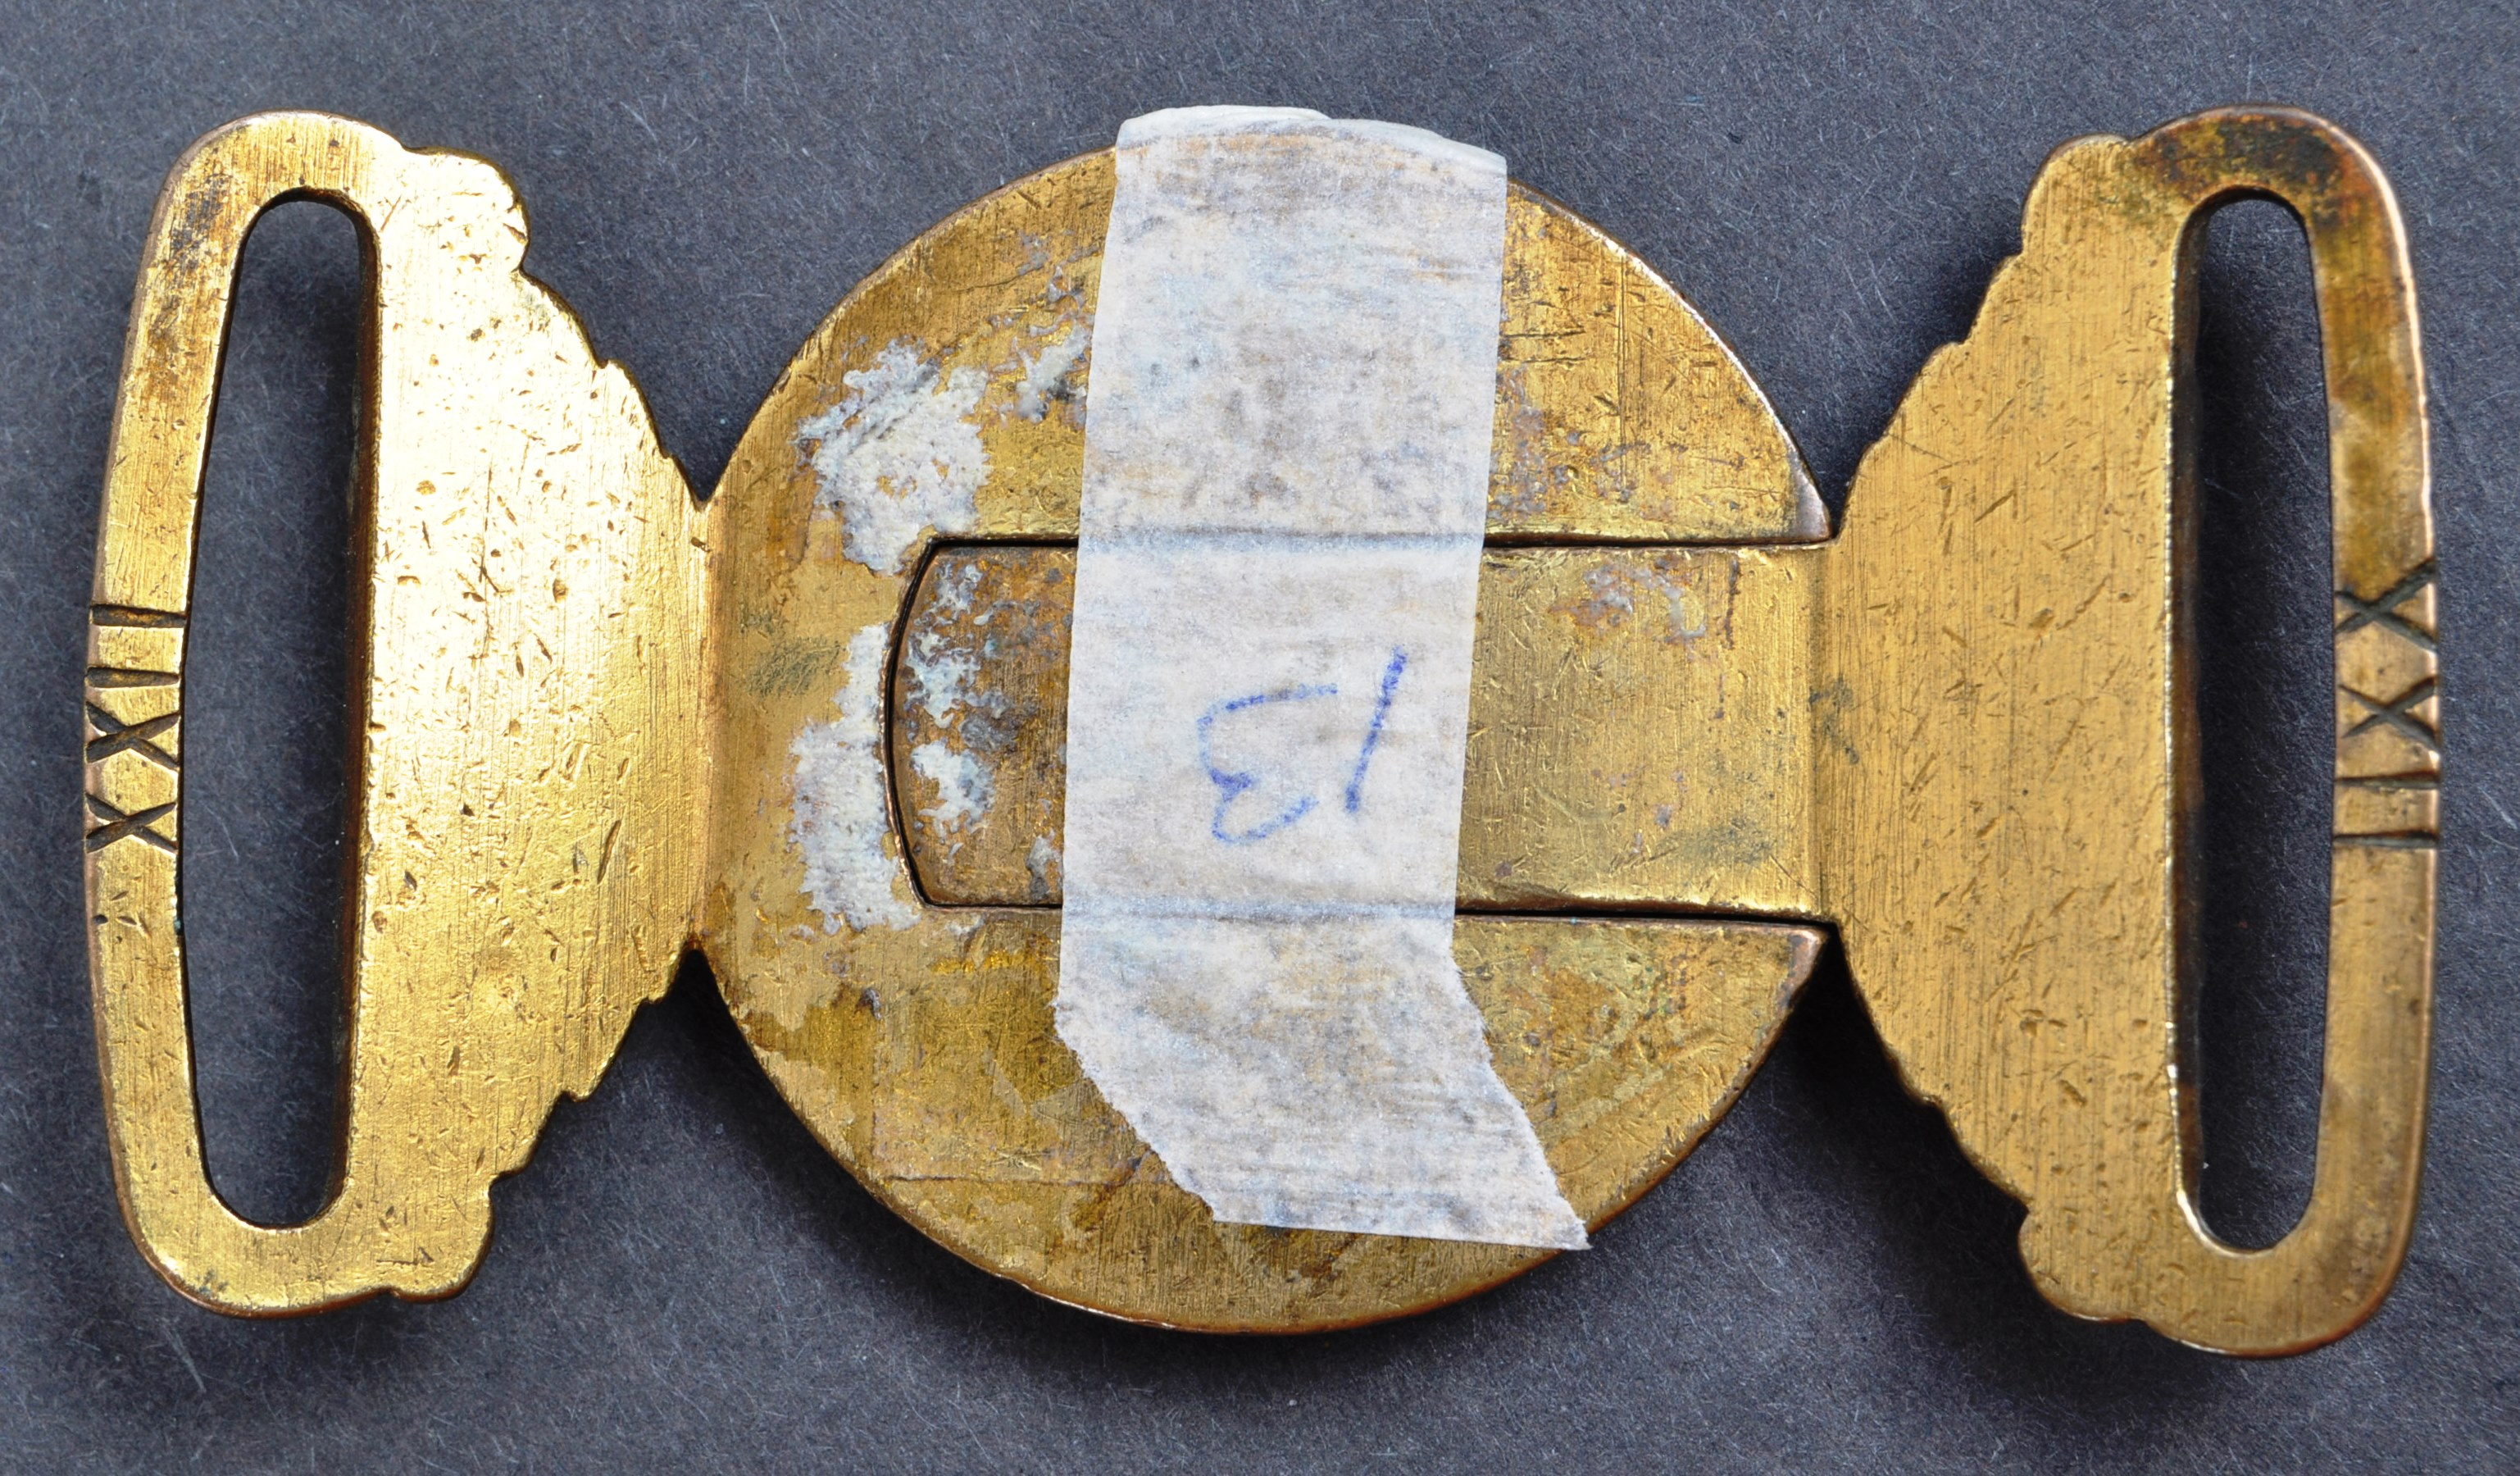 19TH CENTURY VICTORIAN BRITISH ARMY OFFICERS UNIFORM BELT BUCKLE - Image 3 of 4